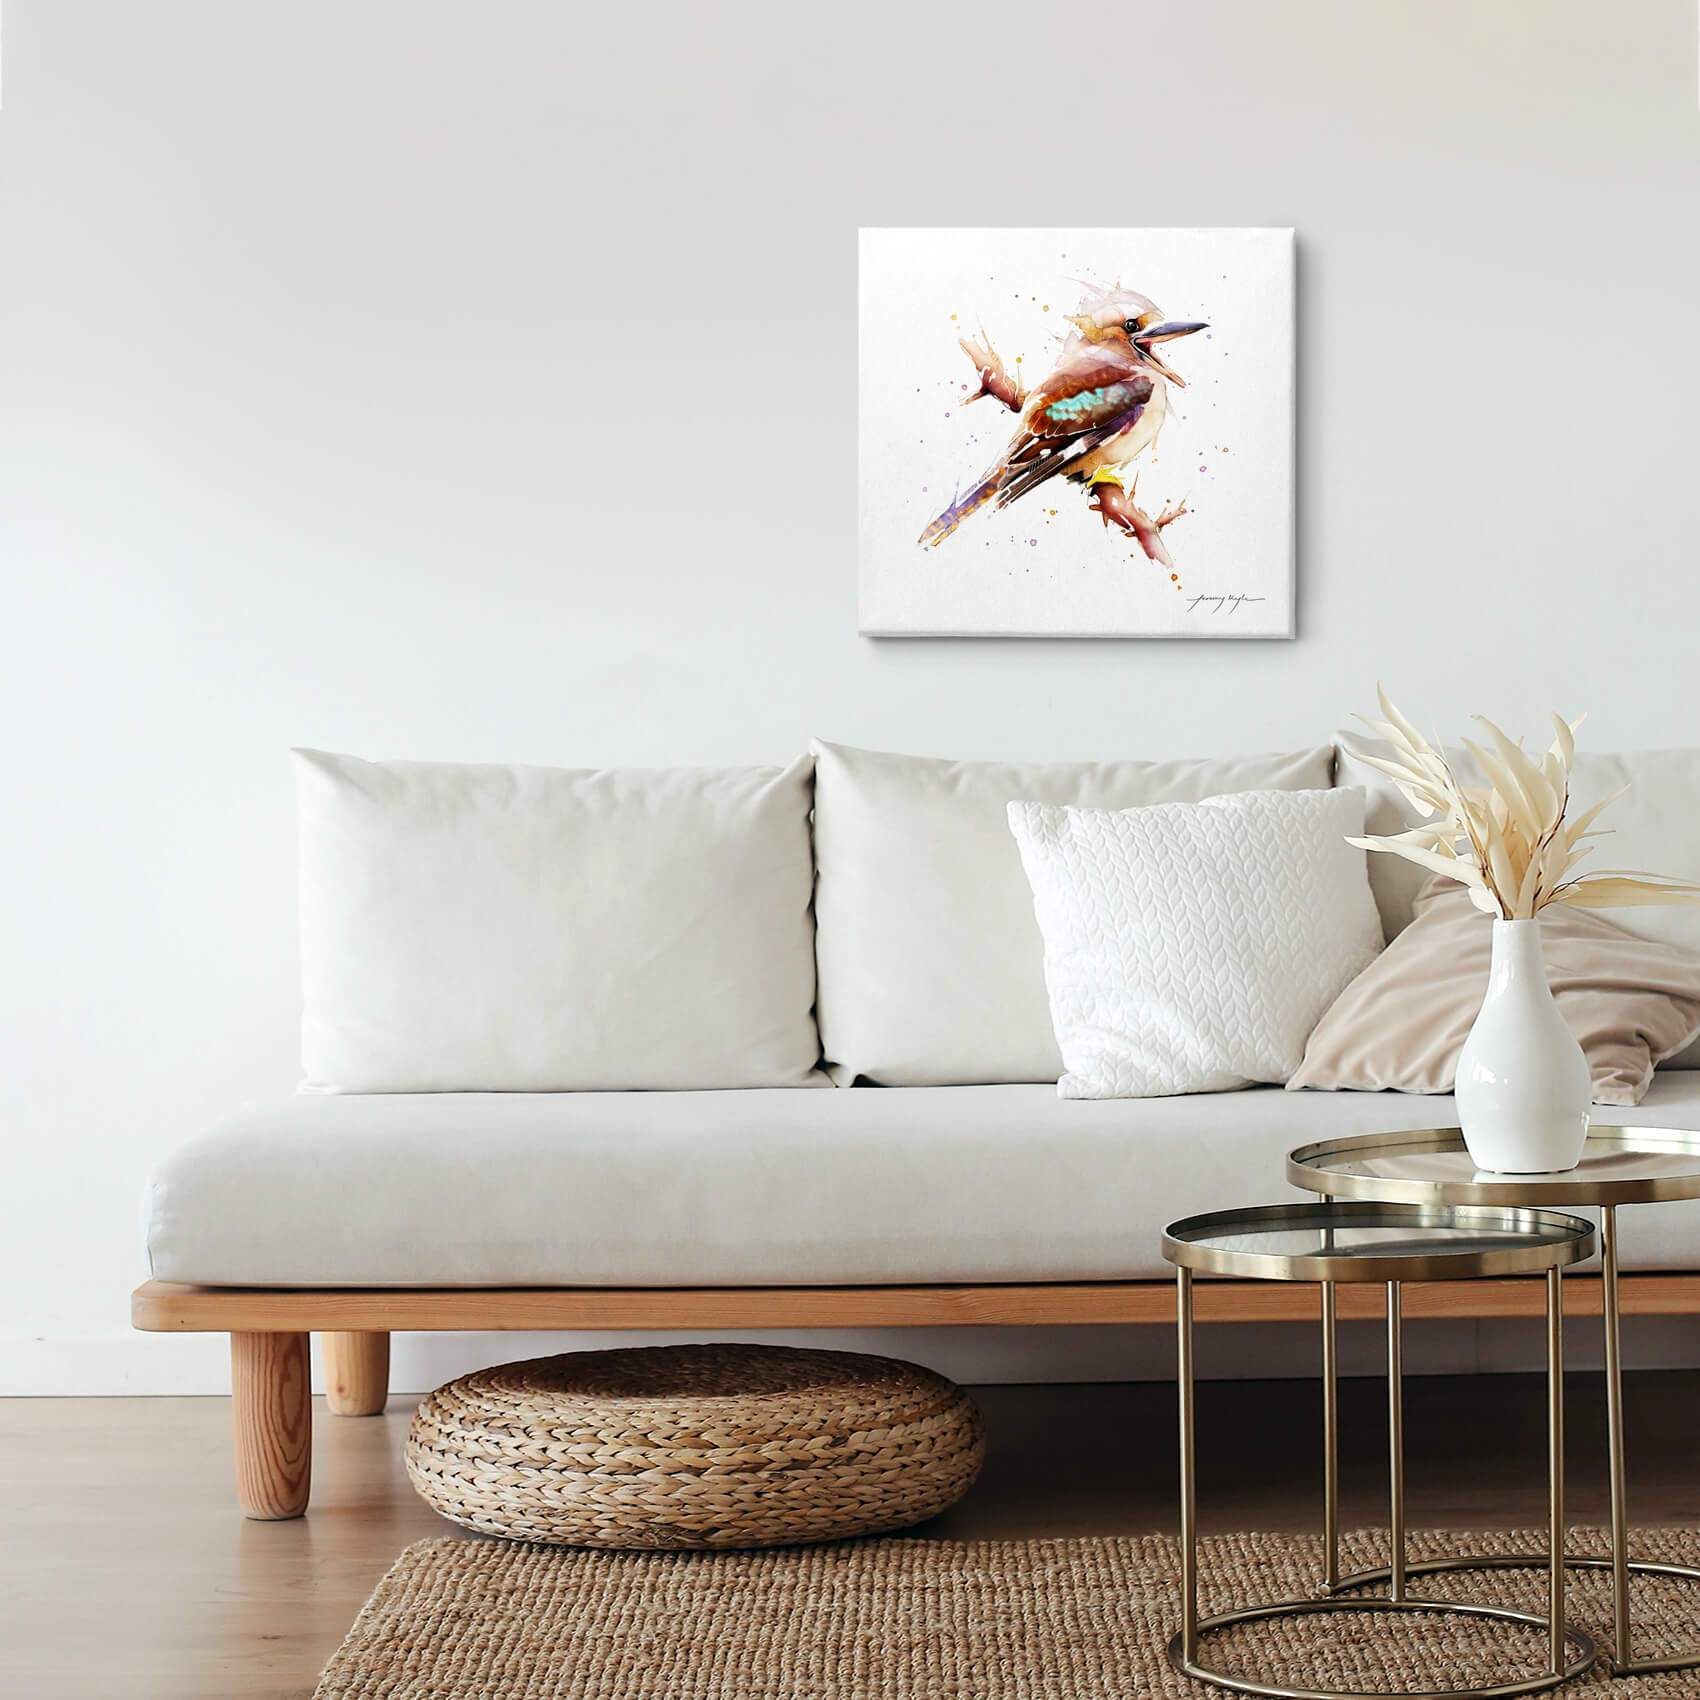 Kookaburra bird canvas wall art hanging in a living room.